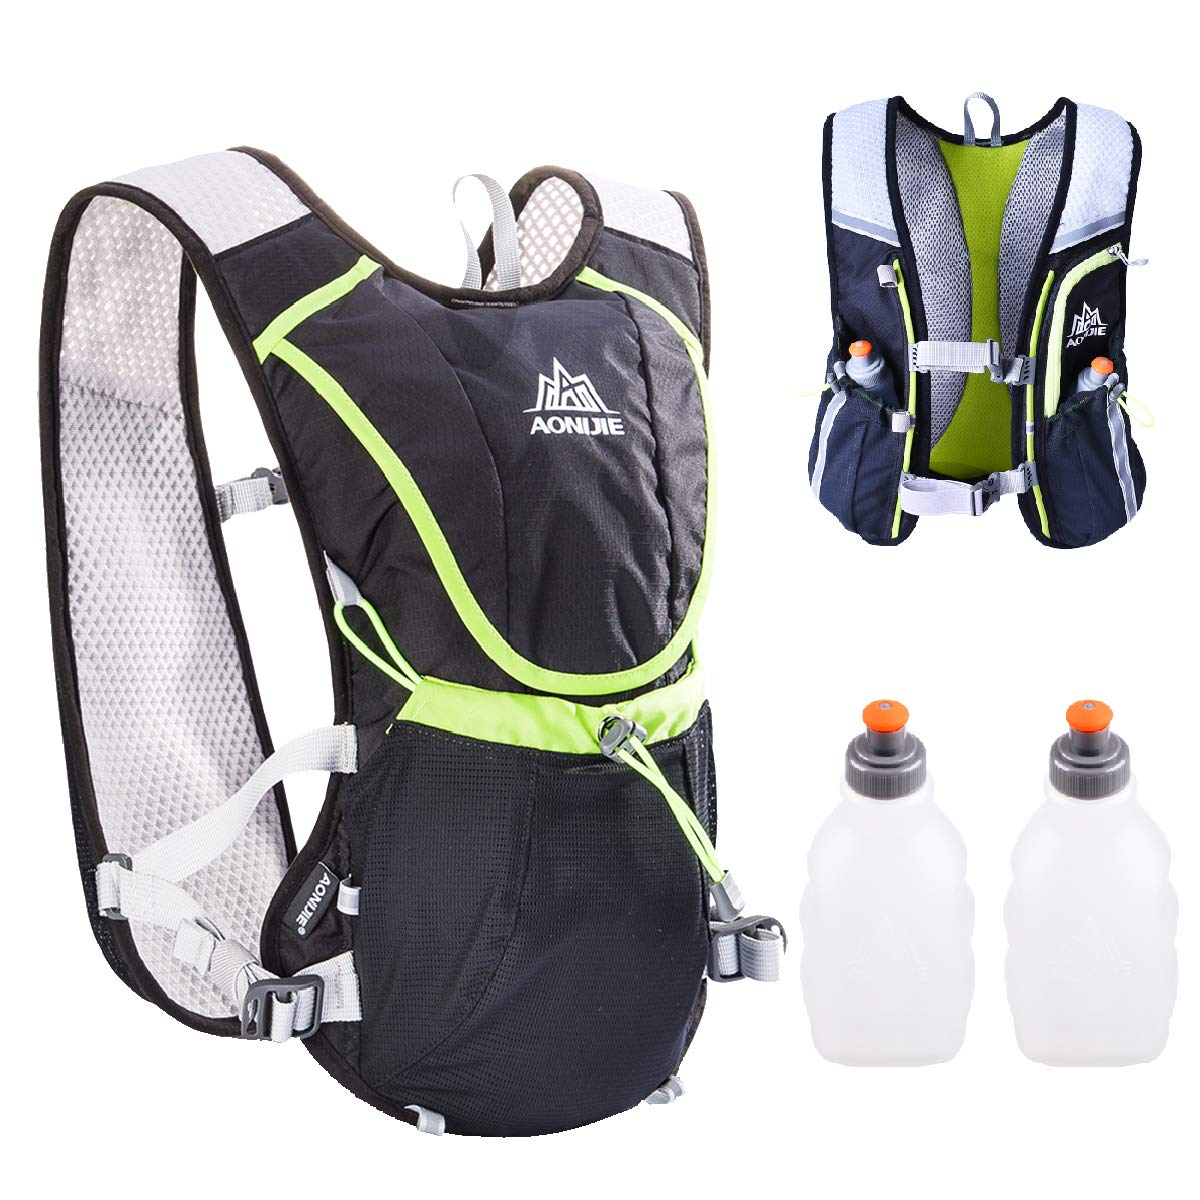 TRIWONDER Hydration Pack Backpack Professional 8L Outdoors Mochilas Trail Marathoner Running Race Cycling Hydration Vest (Black - with 2 Water Bottles)